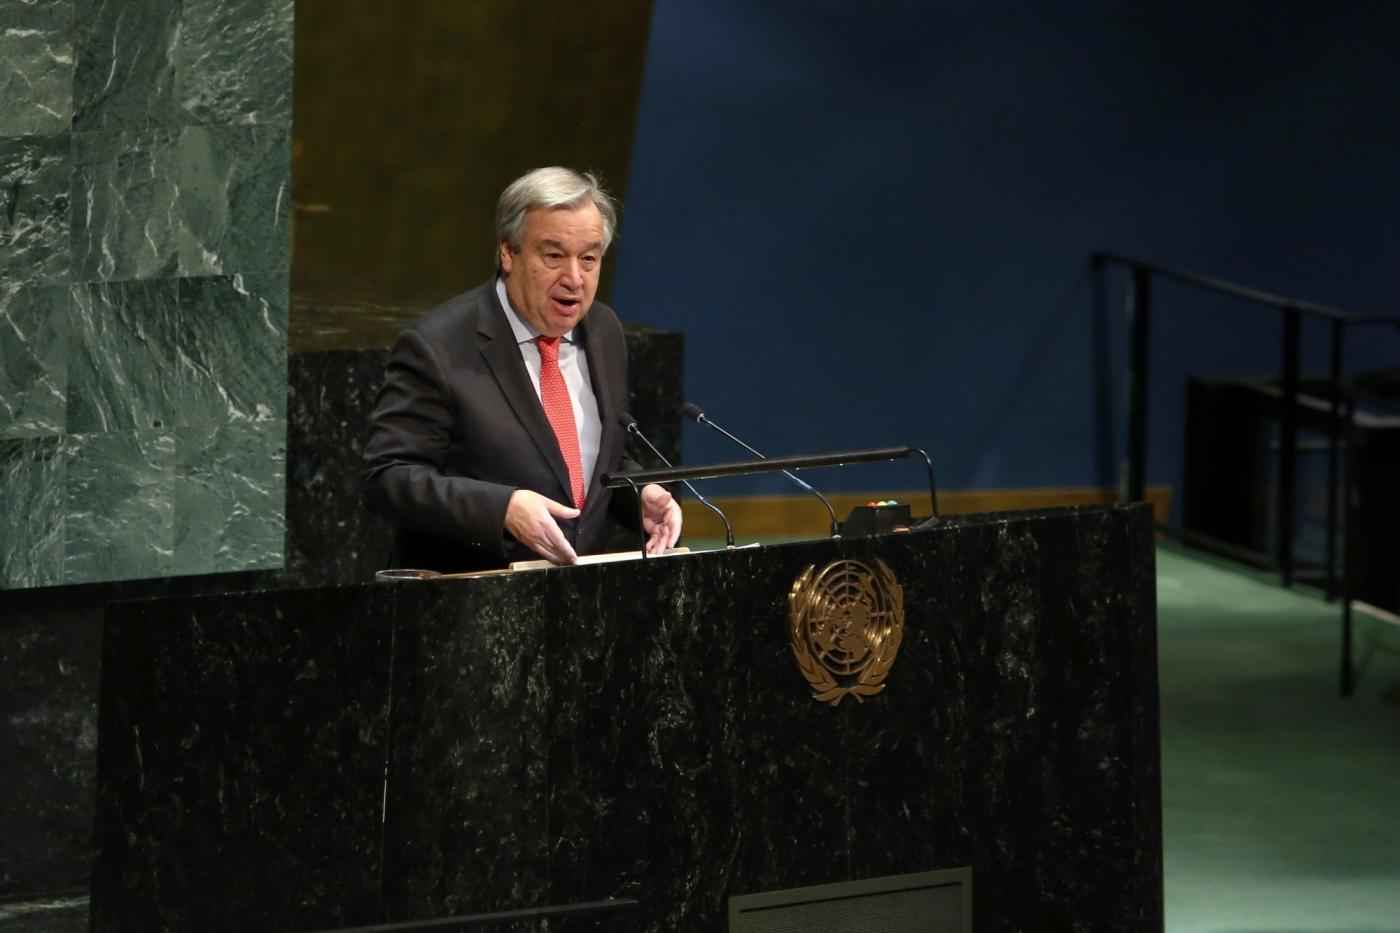 UNITED NATIONS, March 11, 2019 (Xinhua) -- United Nations Secretary-General Antonio Guterres addresses the opening of the 63rd Session of the Commission on the Status of Women (CSW63), at the UN headquarters in New York, March 11, 2019. United Nations Secretary-General Antonio Guterres on Monday warned that there is a